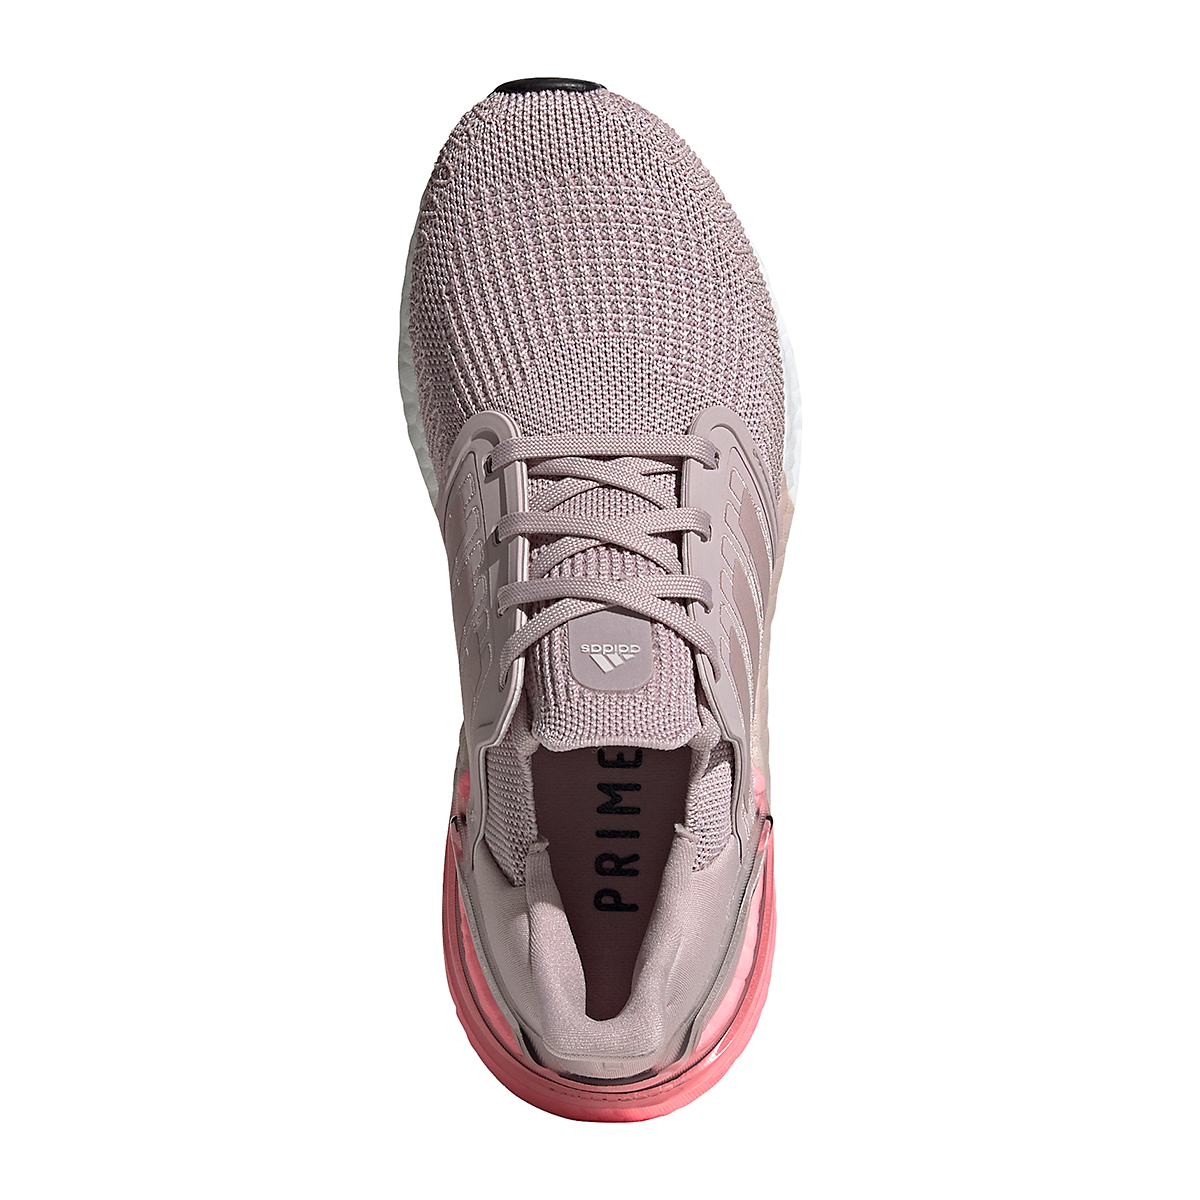 Women's Adidas Ultraboost 20 Running Shoe - Color: New Rose - Size: 5 - Width: Regular, New Rose, large, image 3